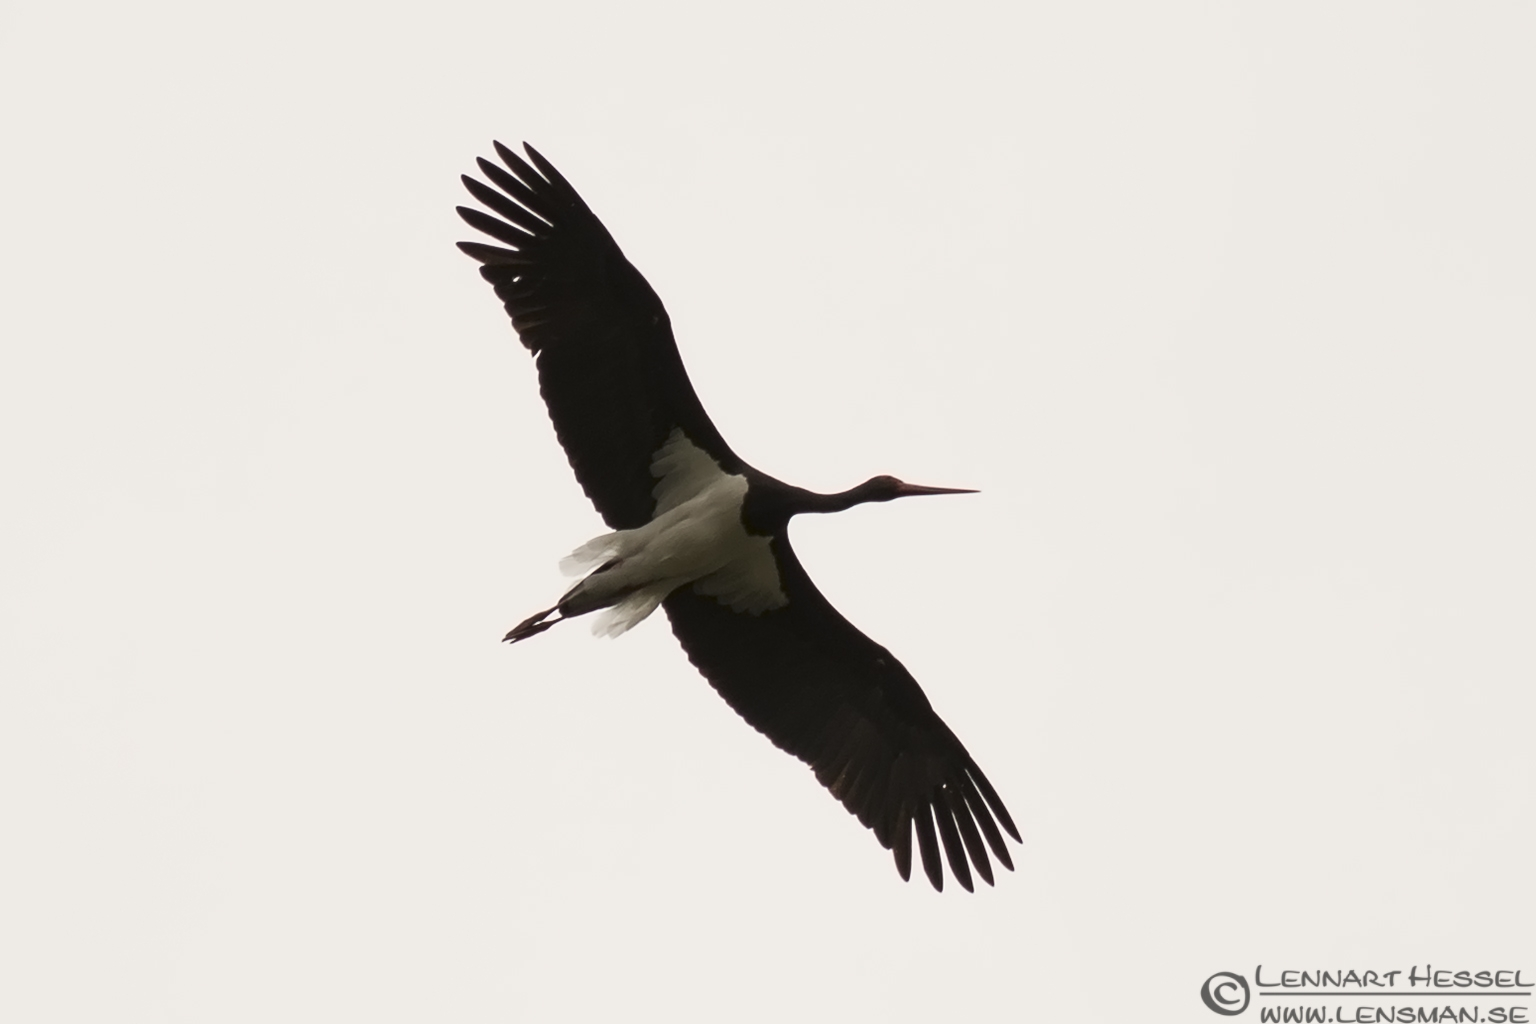 Black Stork in Bulgaria